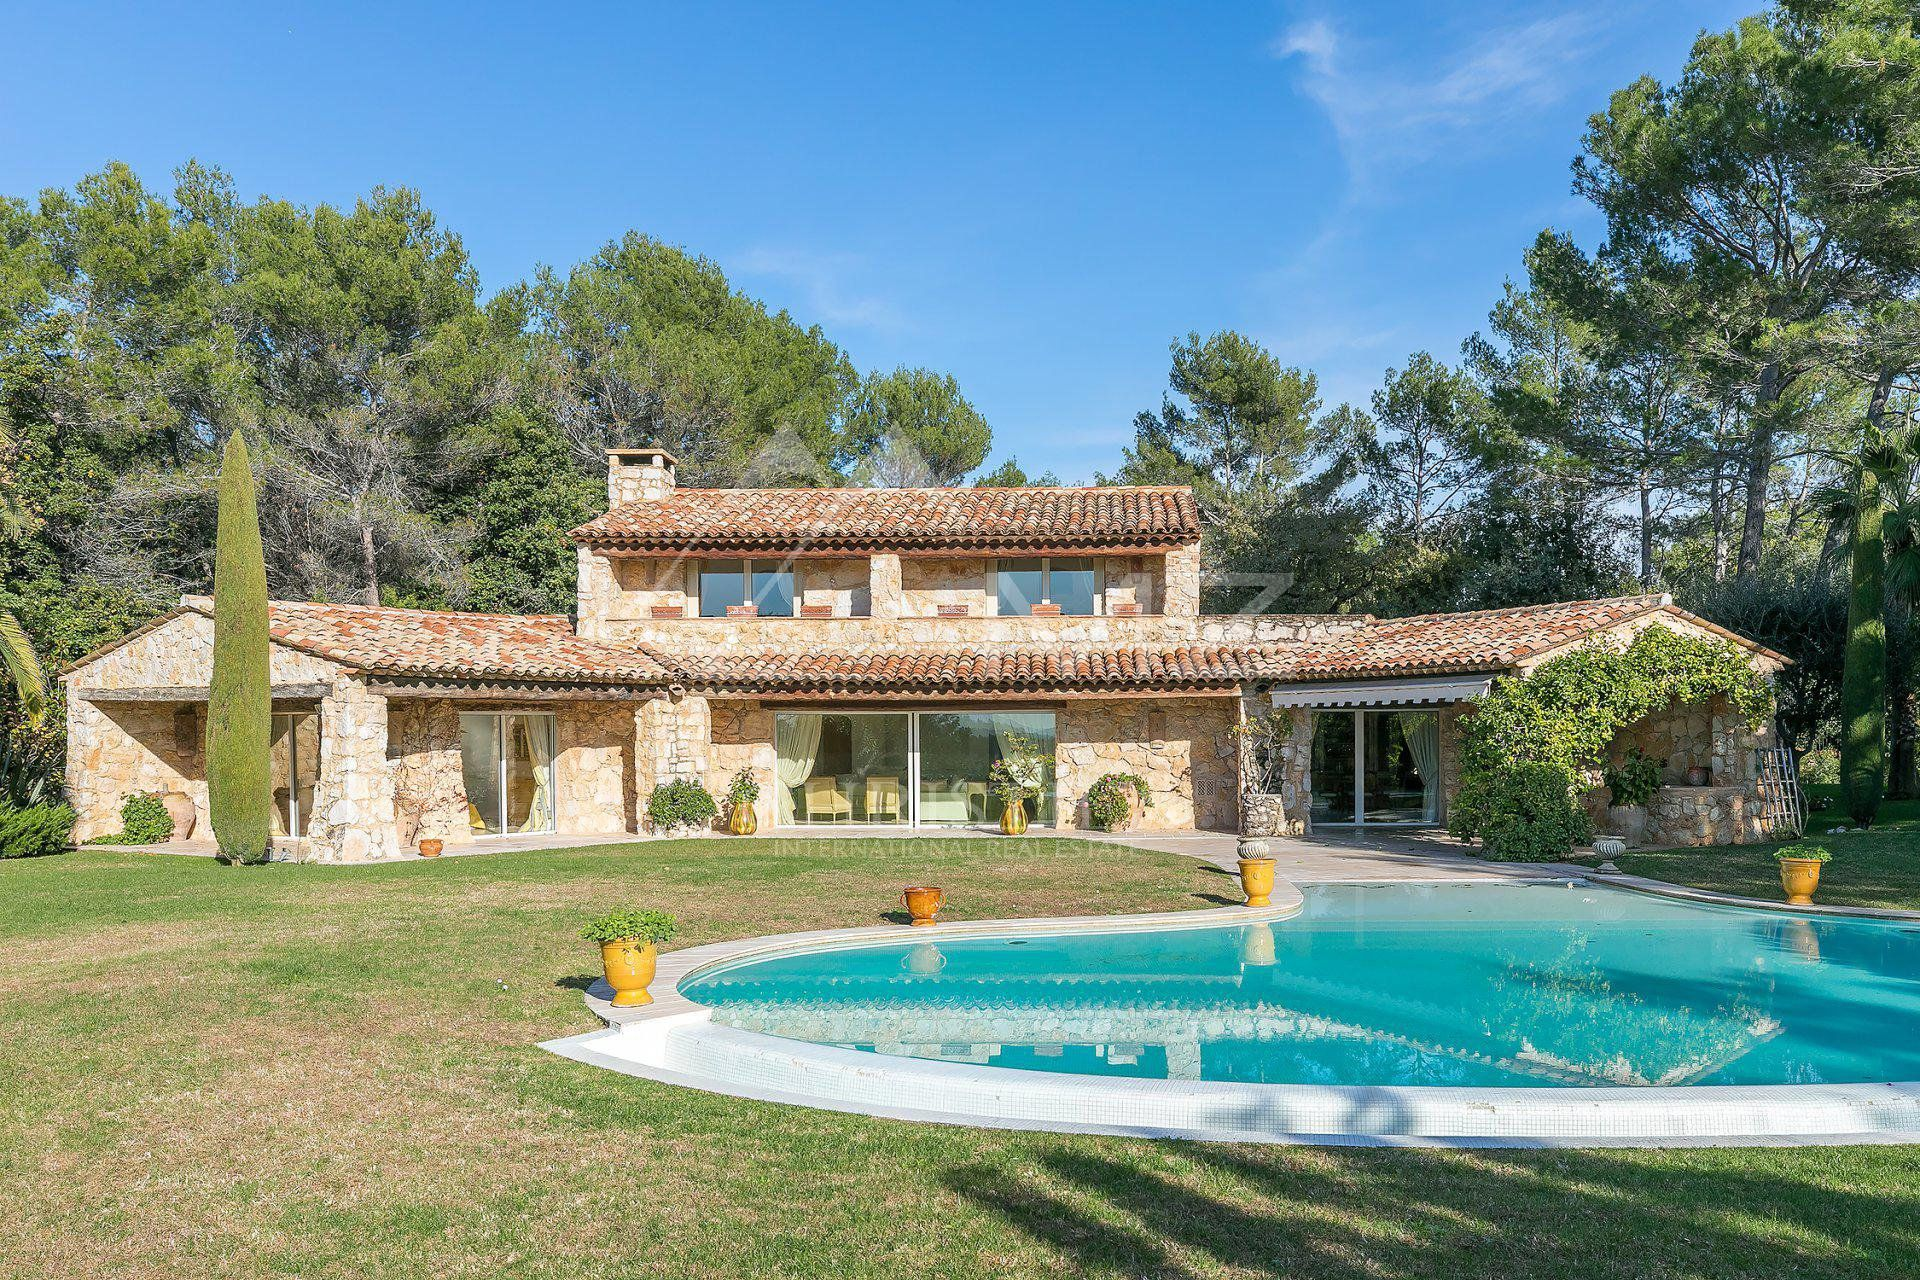 Close to Saint-Paul de Vence - Architect Villa in total peace and quiet